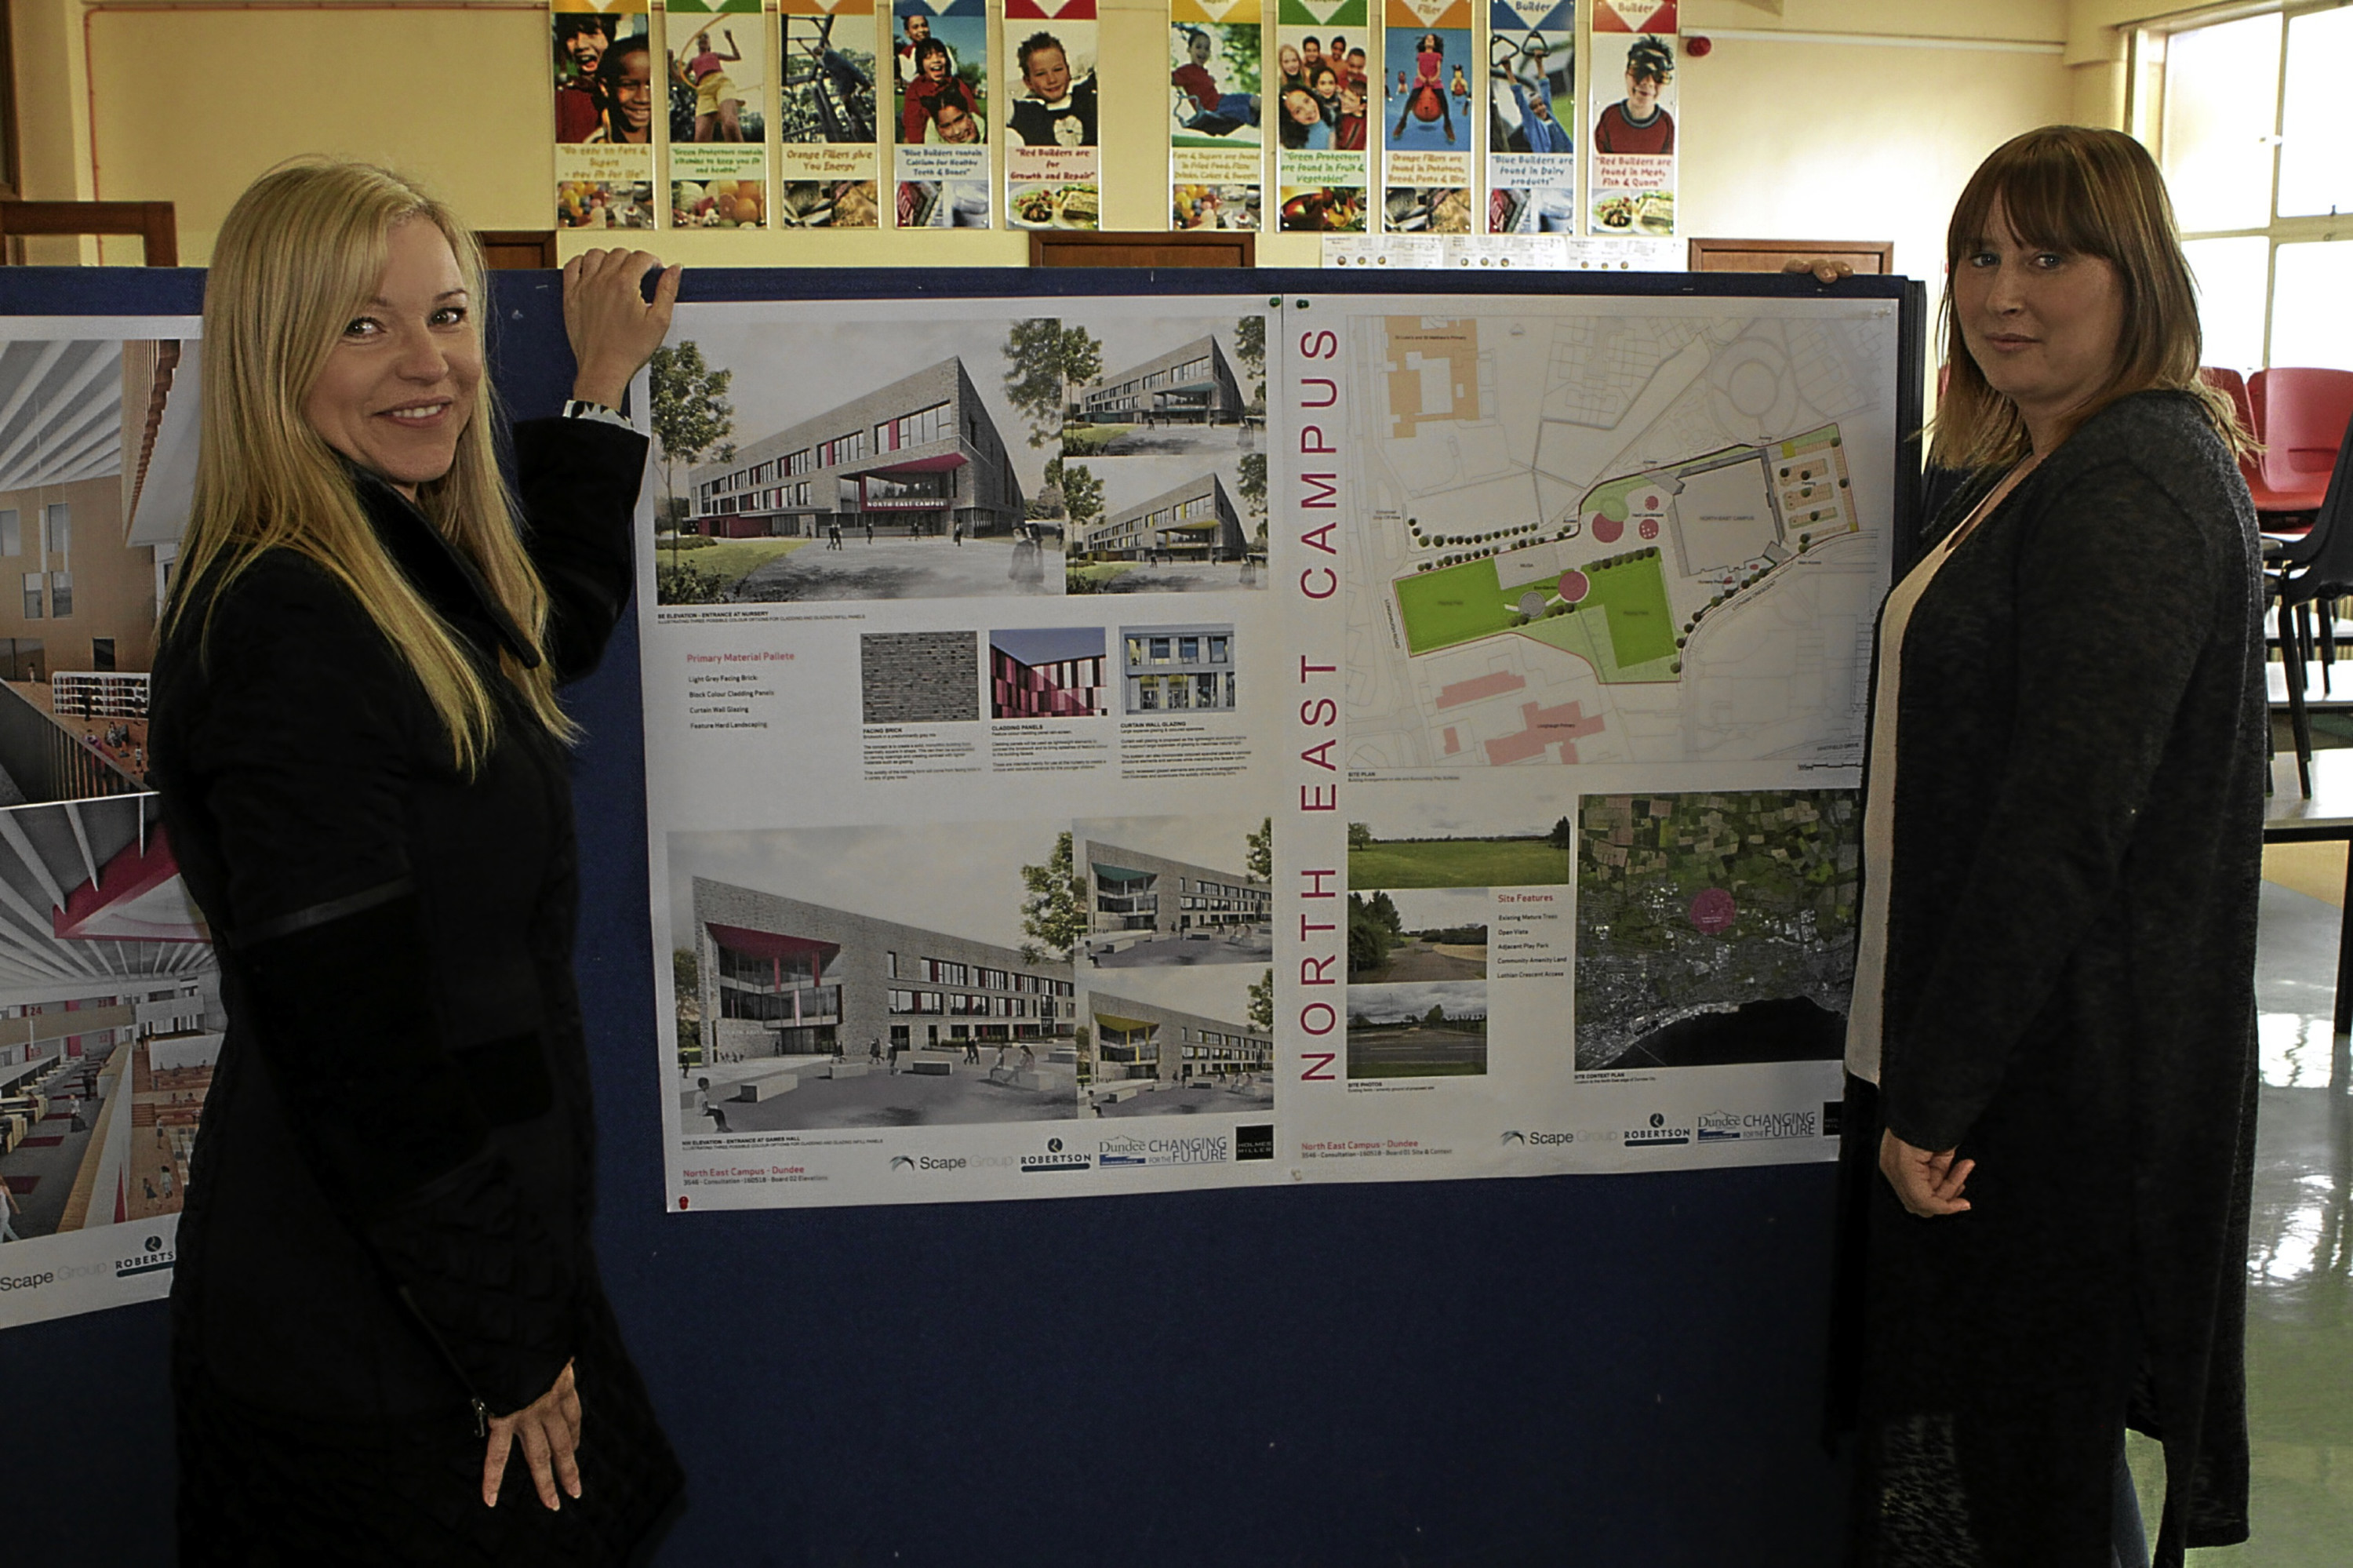 Parents Dawn Millar and Tania Craigie were among those to view the plans for the new Longhaugh school campus as images were revealed.